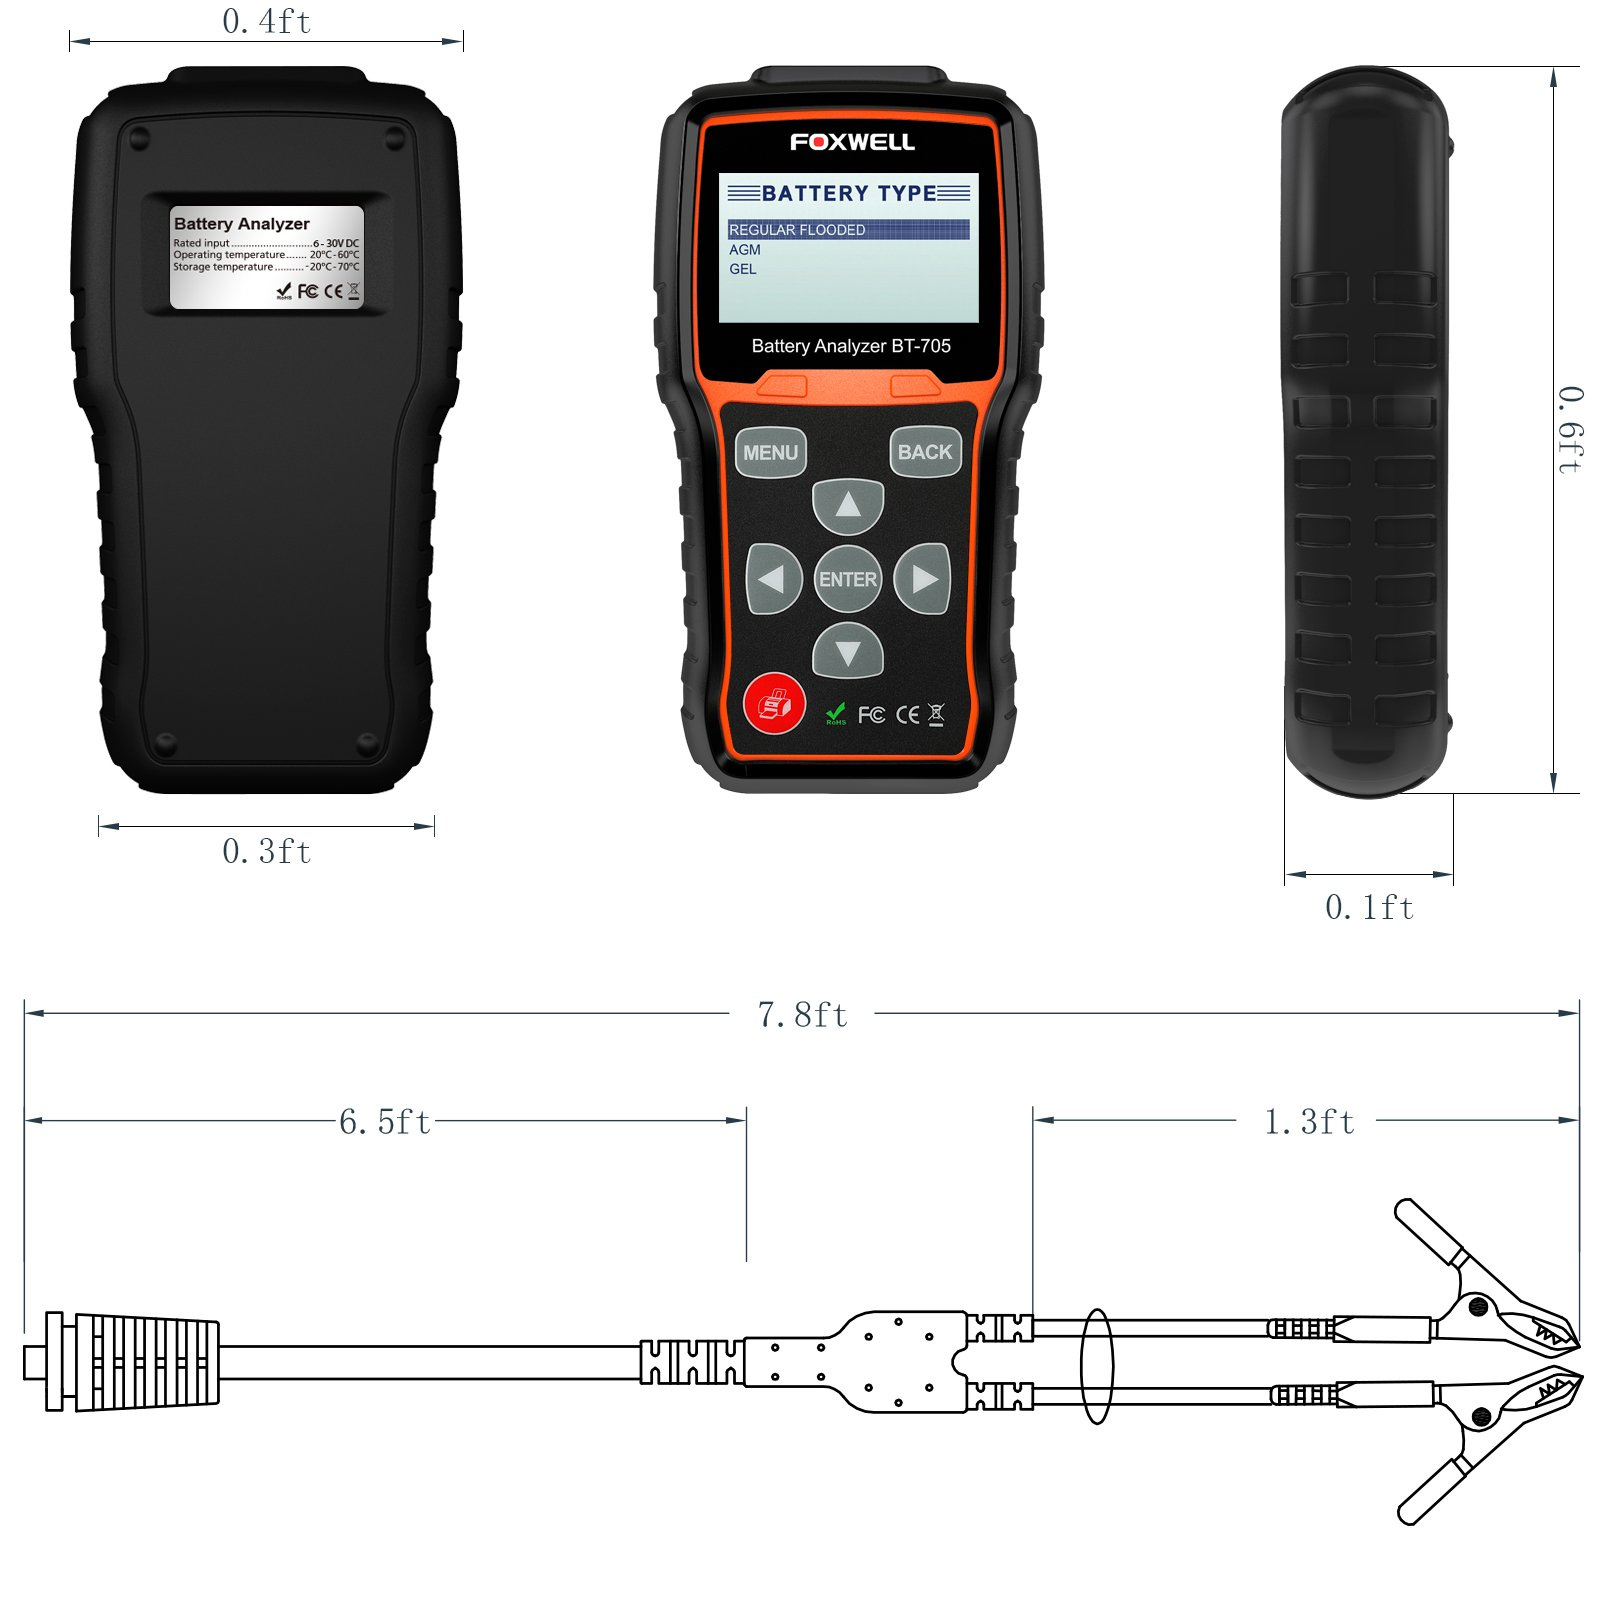 FOXWELL Battery Tester BT705 Automotive 100-2000 CCA Battery Load Tester 12V 24V Car Cranking and Charging System Test Tool Digital Battery Analyzer for Cars and Heavy Duty Trucks by FOXWELL (Image #3)